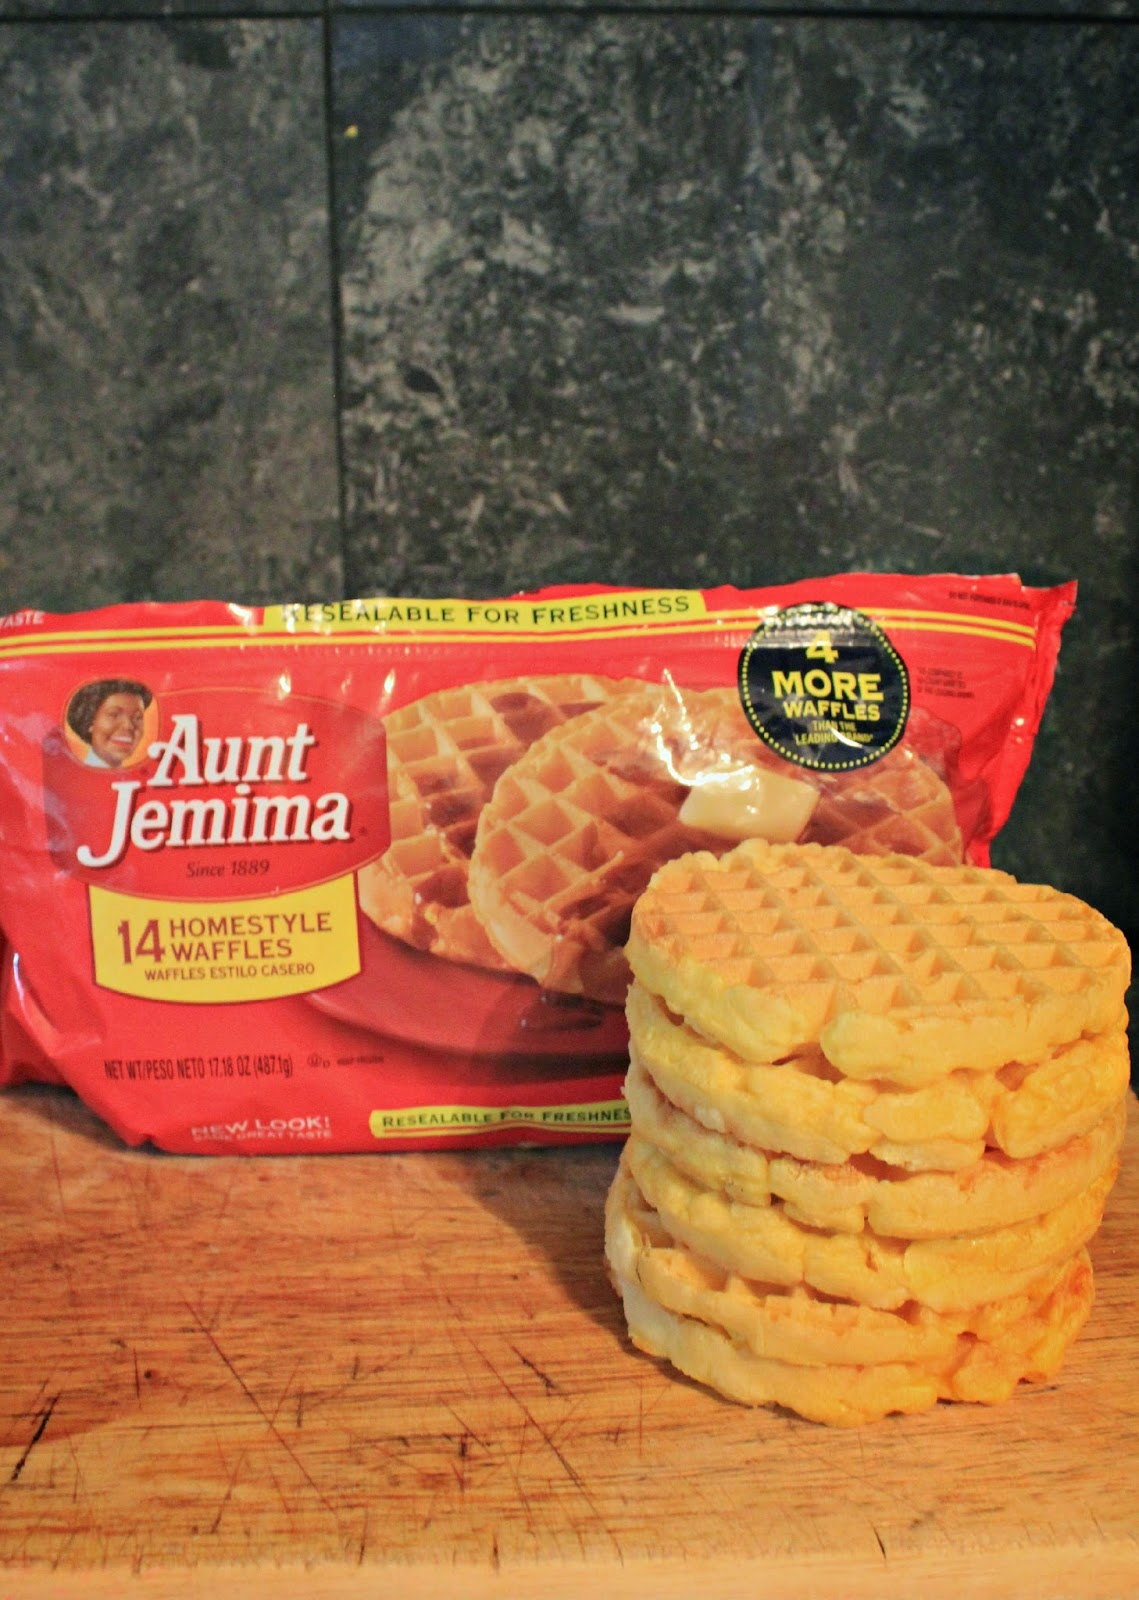 NEW Aunt Jemima frozen waffles in resealable bag! #4MoreWaffles #shop